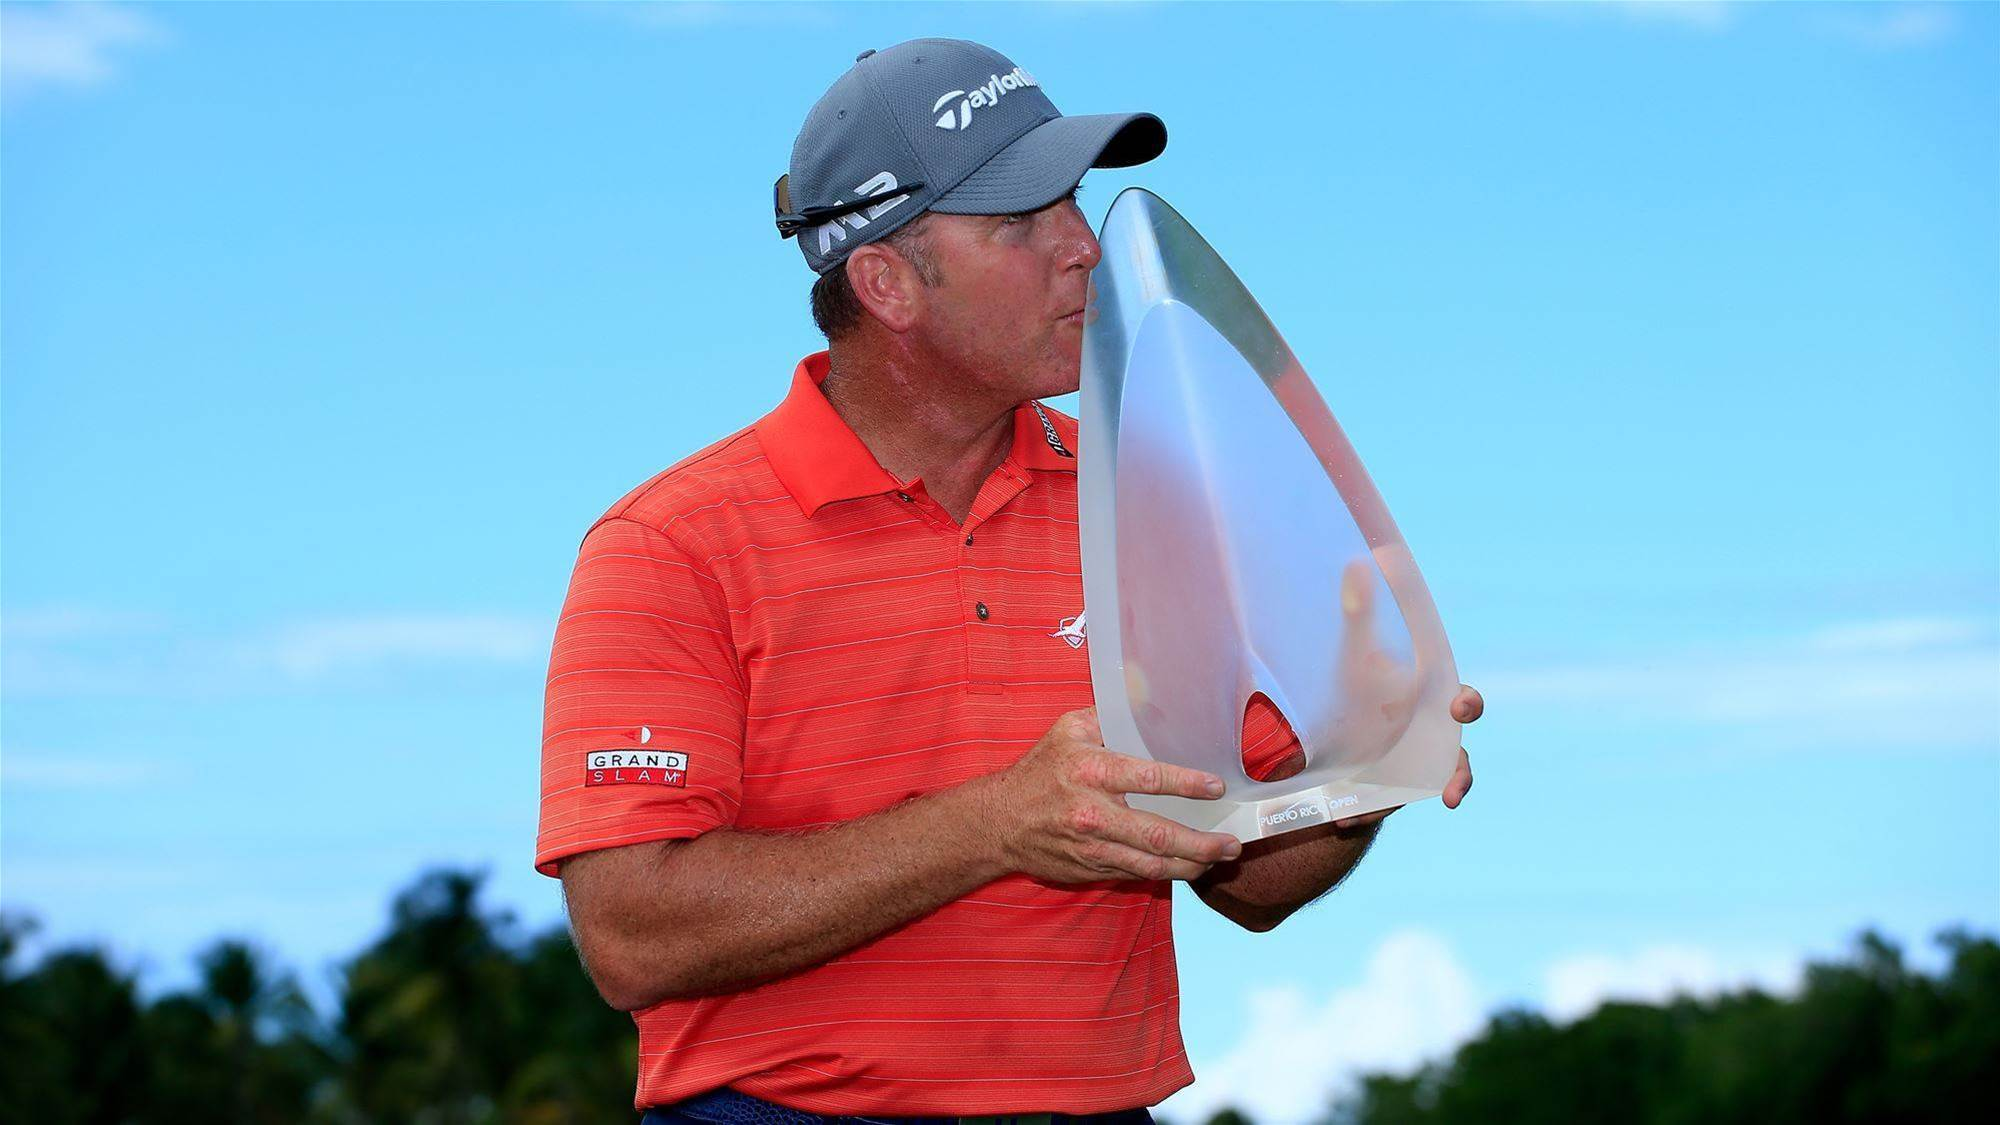 PGA TOUR: D.A gets the Points in Puerto Rico